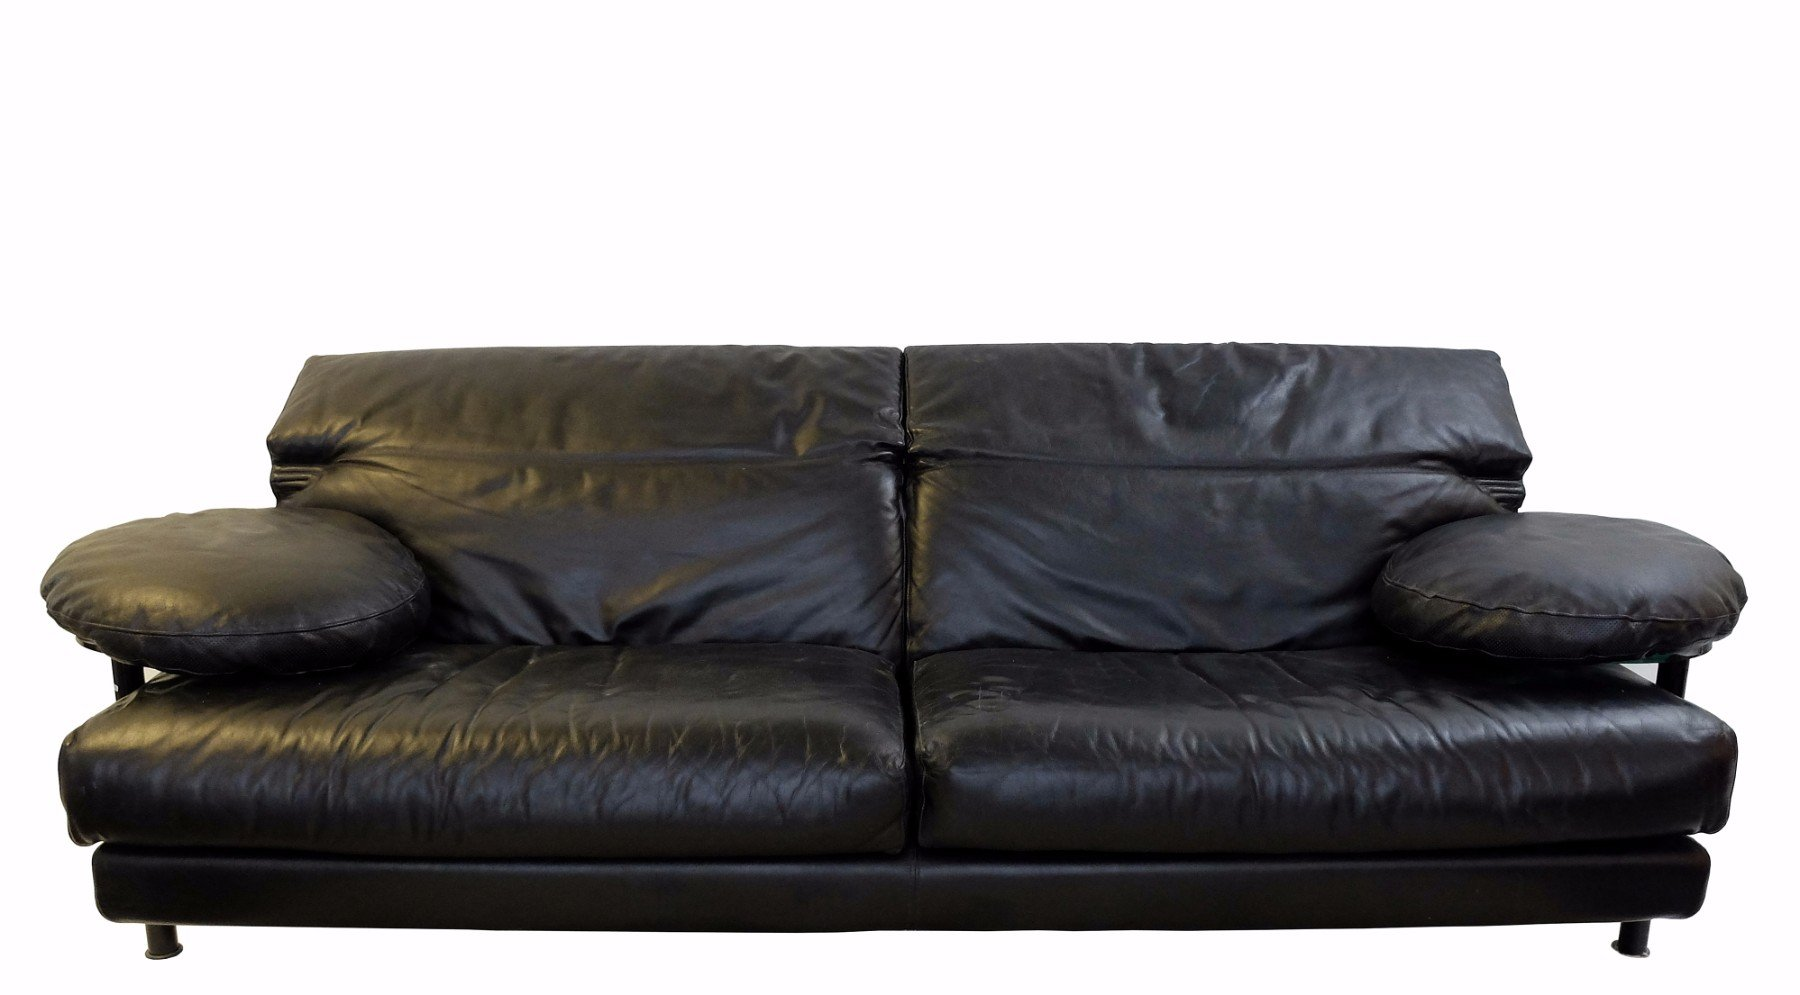 Black Leather Couches To Vintage Arca Black Leather Sofa By Paolo Piva For Bu0026b Italia